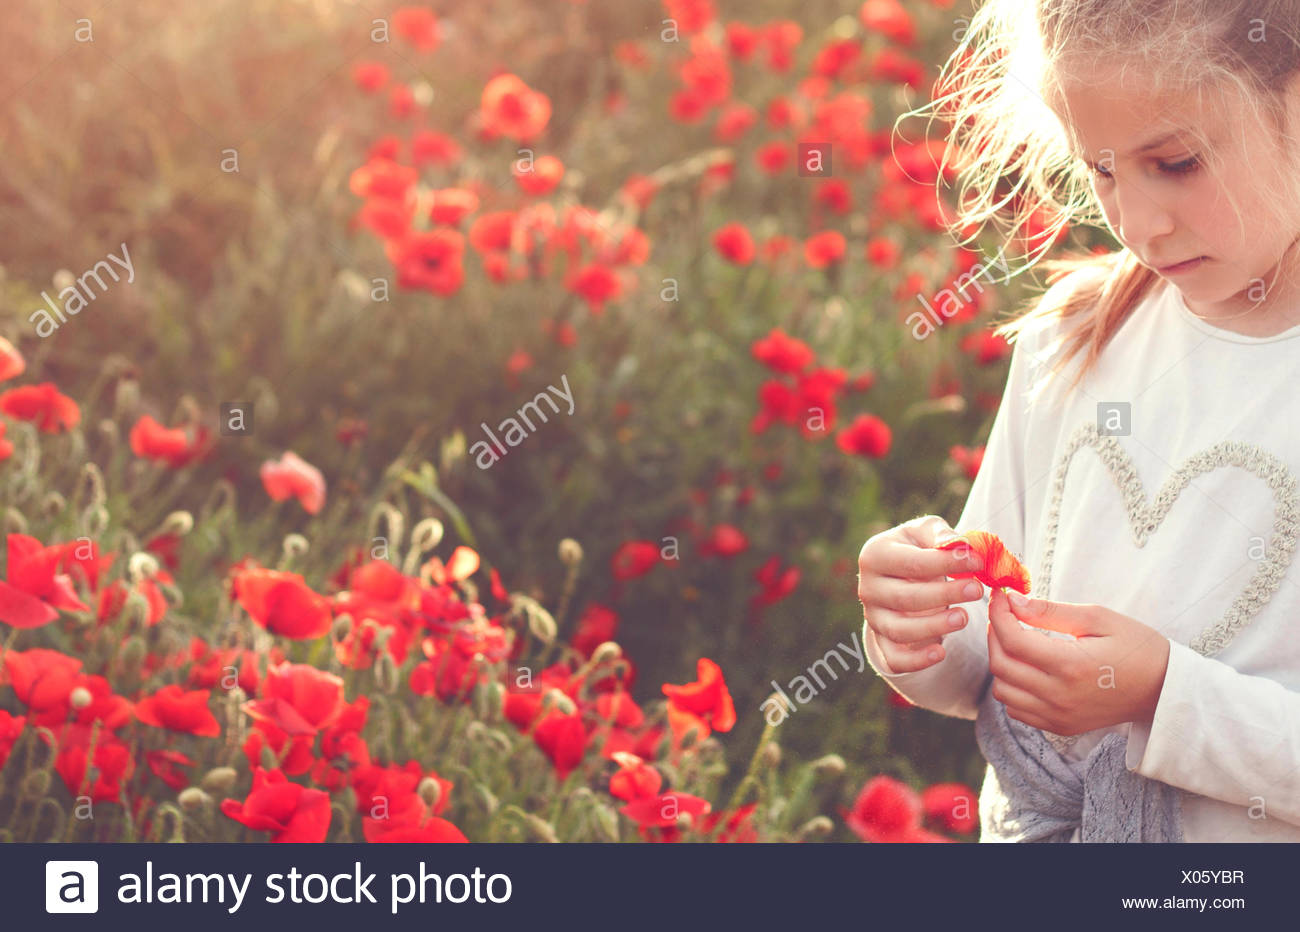 Girl standing in a field of poppies holding a poppy - Stock Image